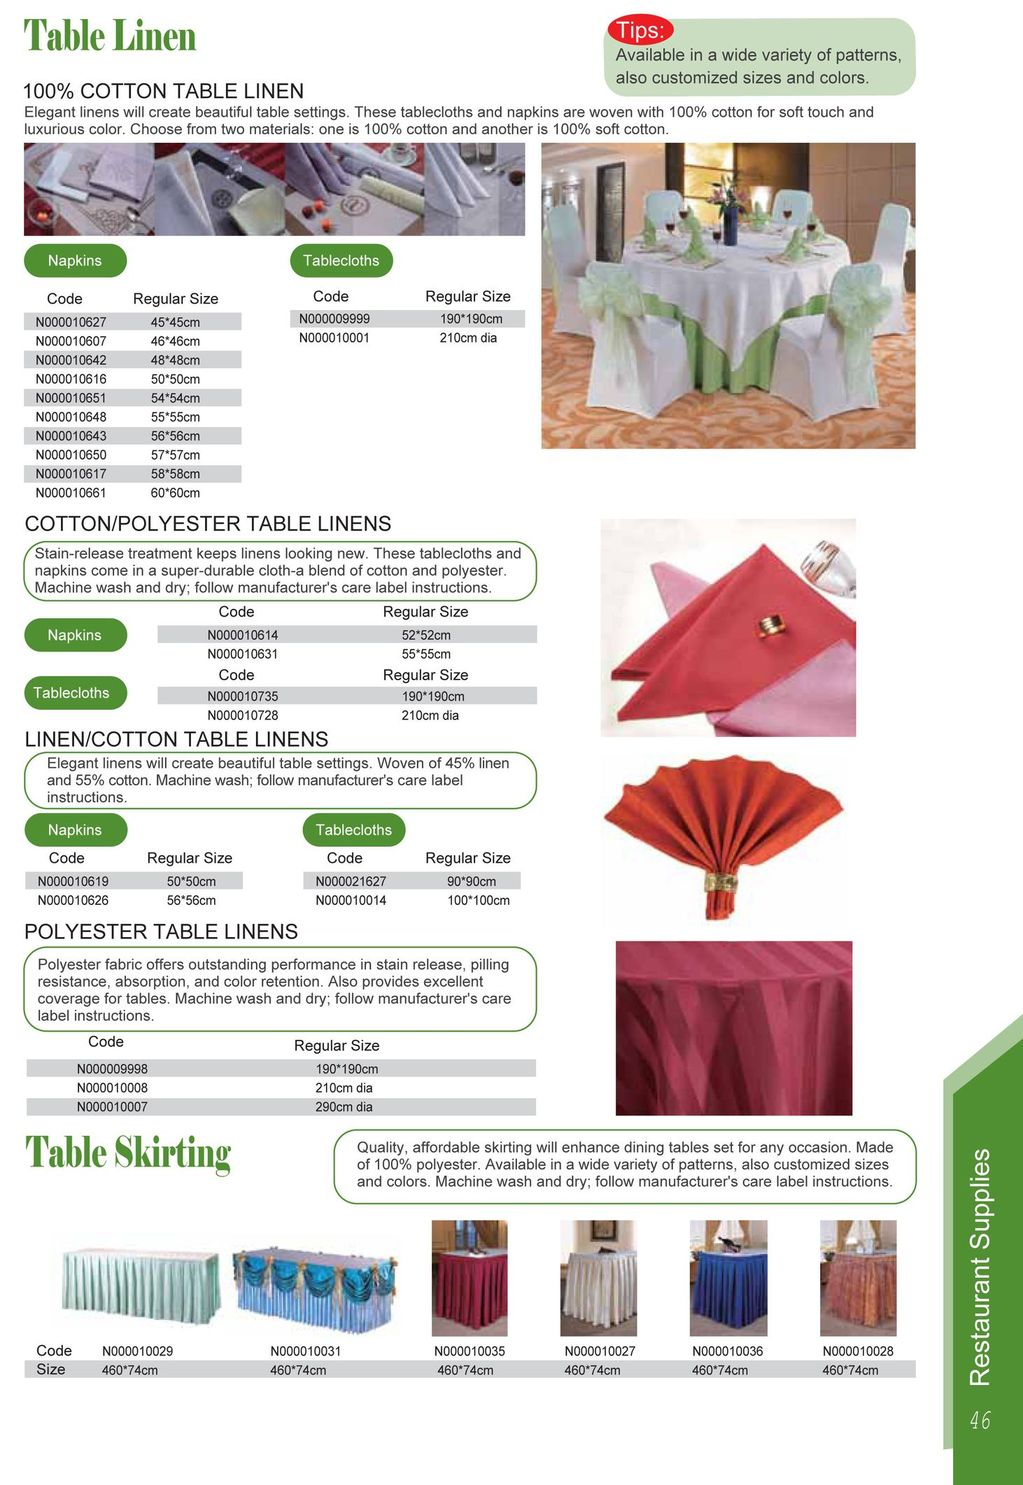 Table Linens Virtual Design | Interior Decorating Tips